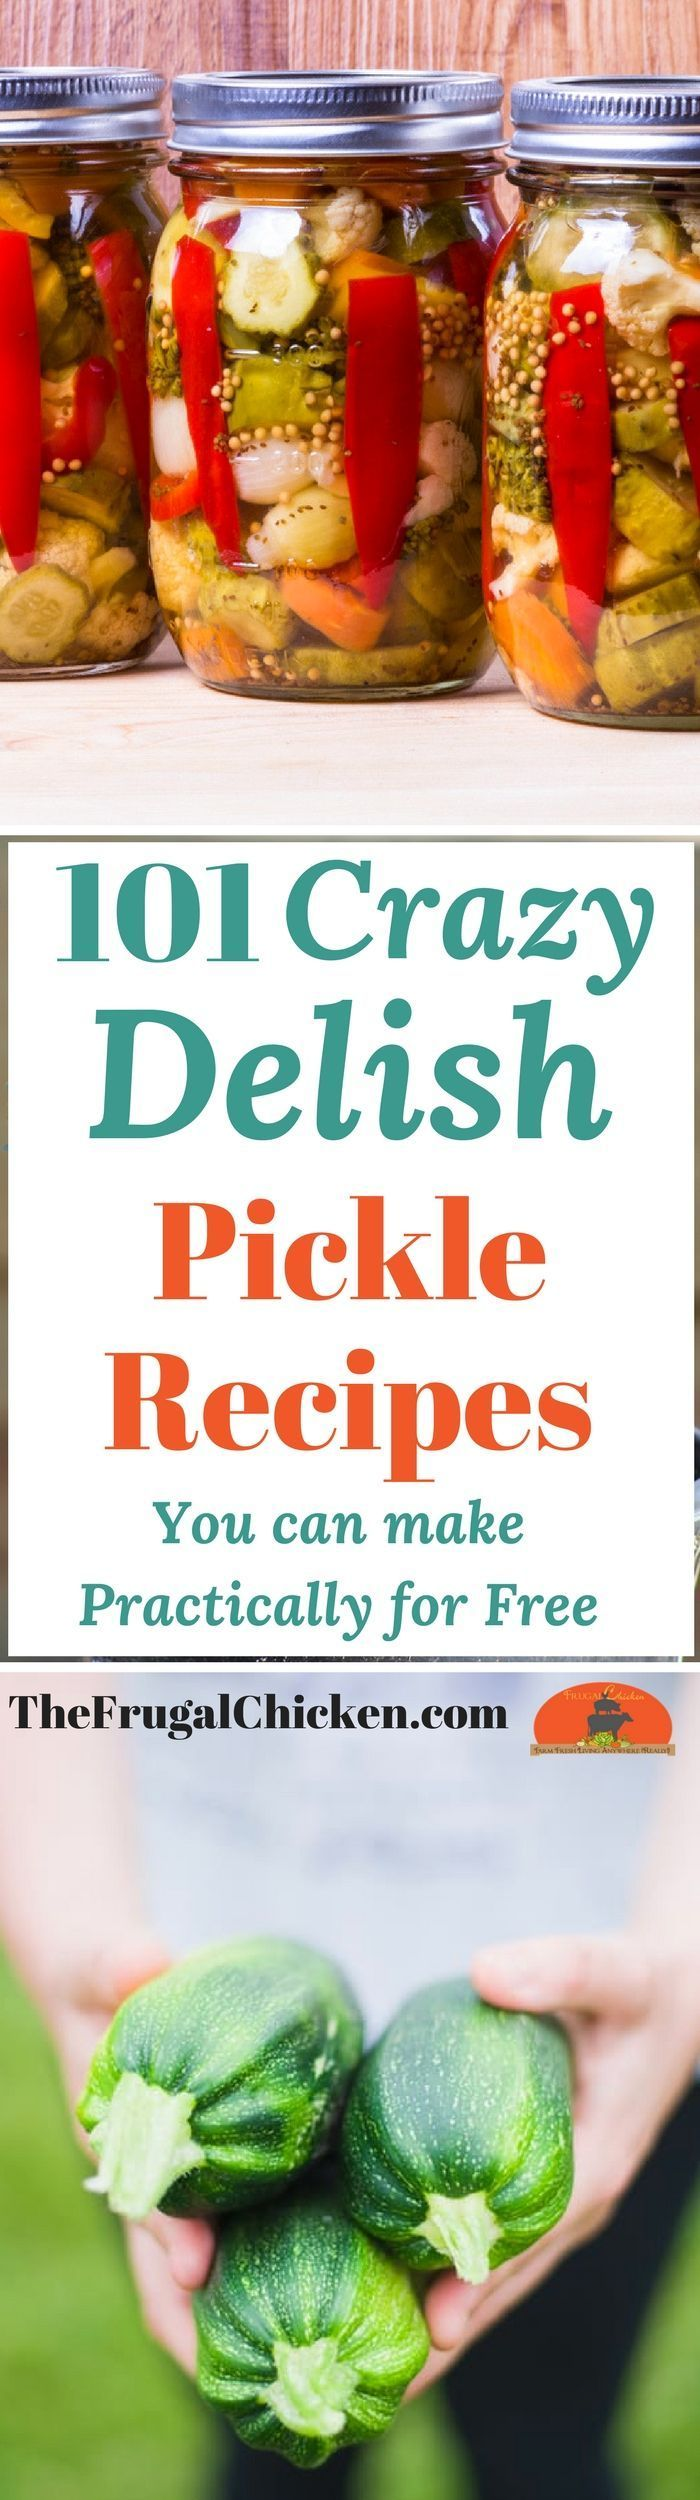 Pickles are super healthy for your gut & immune system, and luckily, they're also super yummy AND FRUGAL! Here's 101 pickles that even your kids will love!